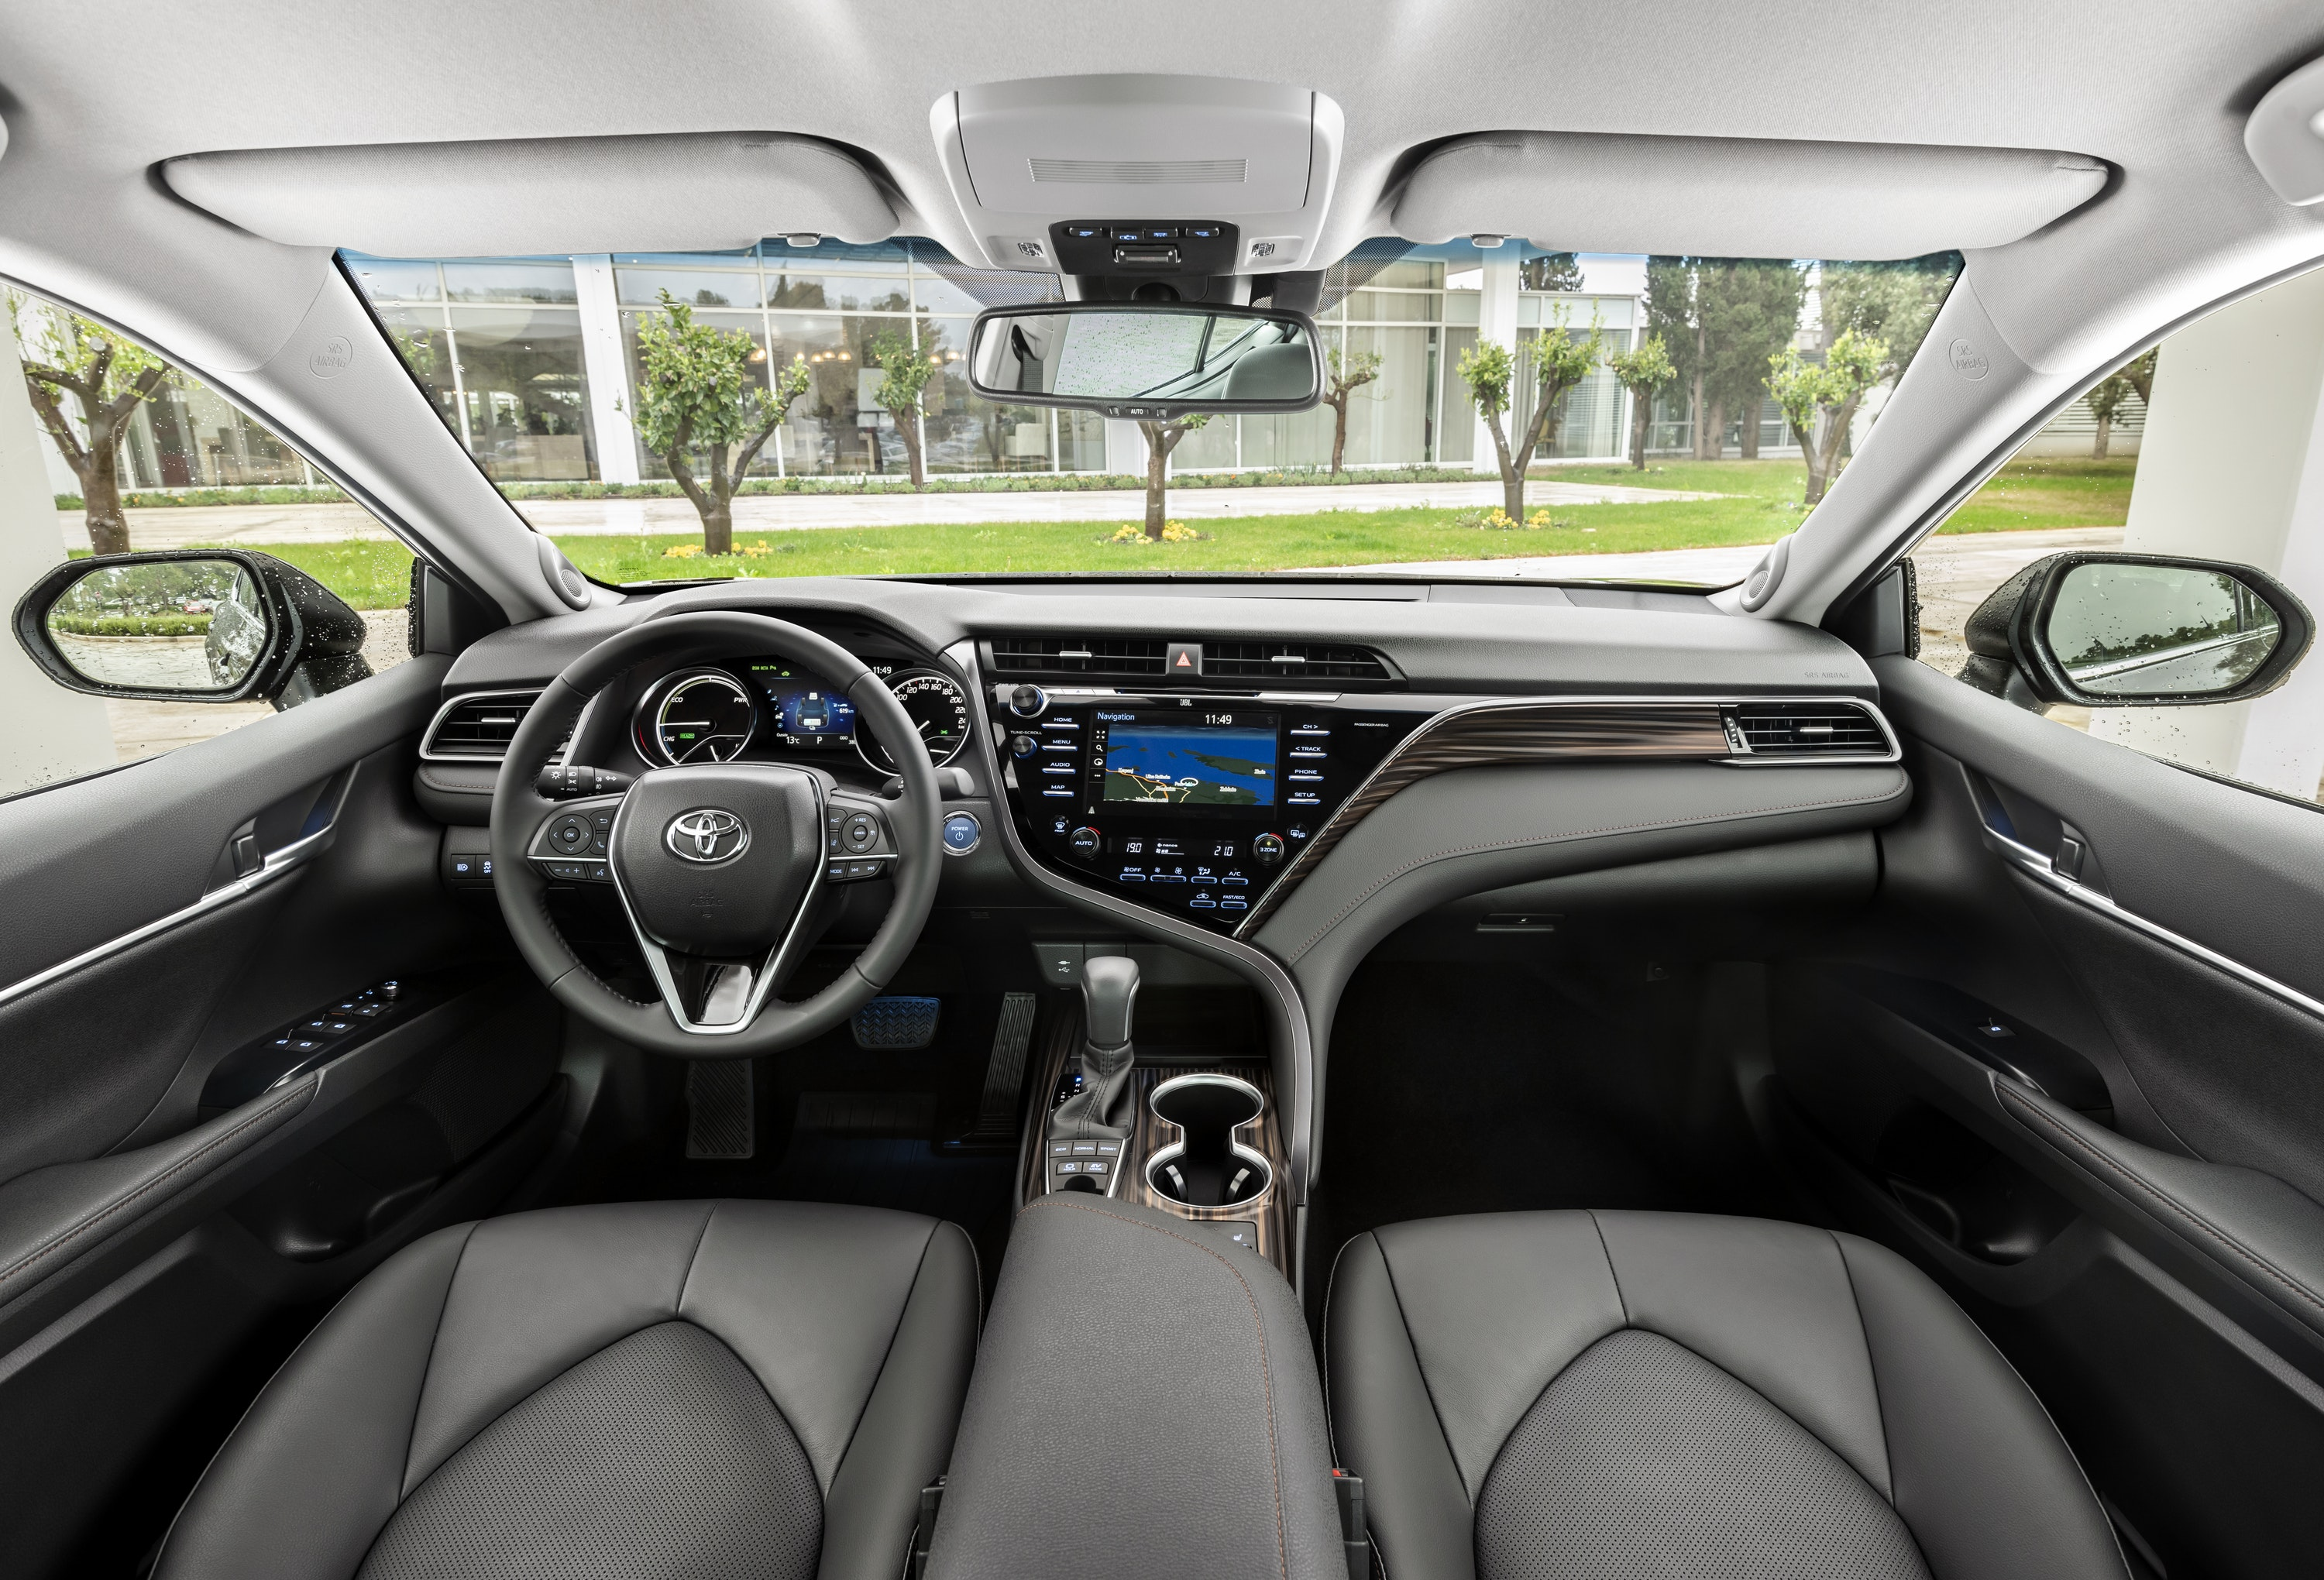 Interior of the Toyota Camry